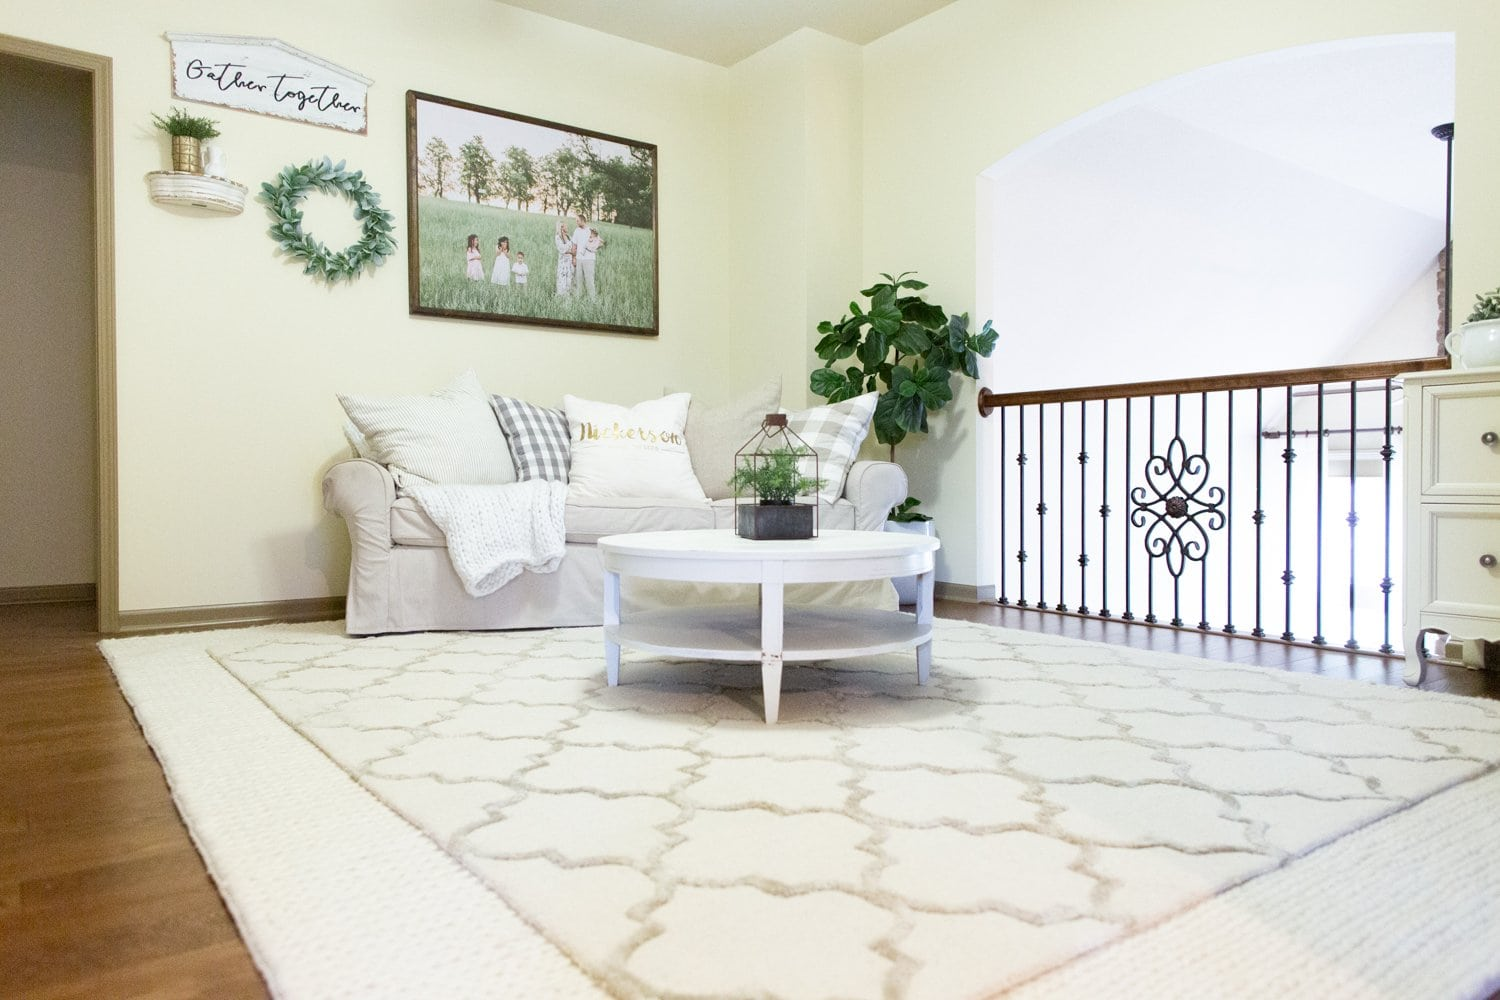 Benjamin Moore Simply Irresistible Cream Paint Color family room